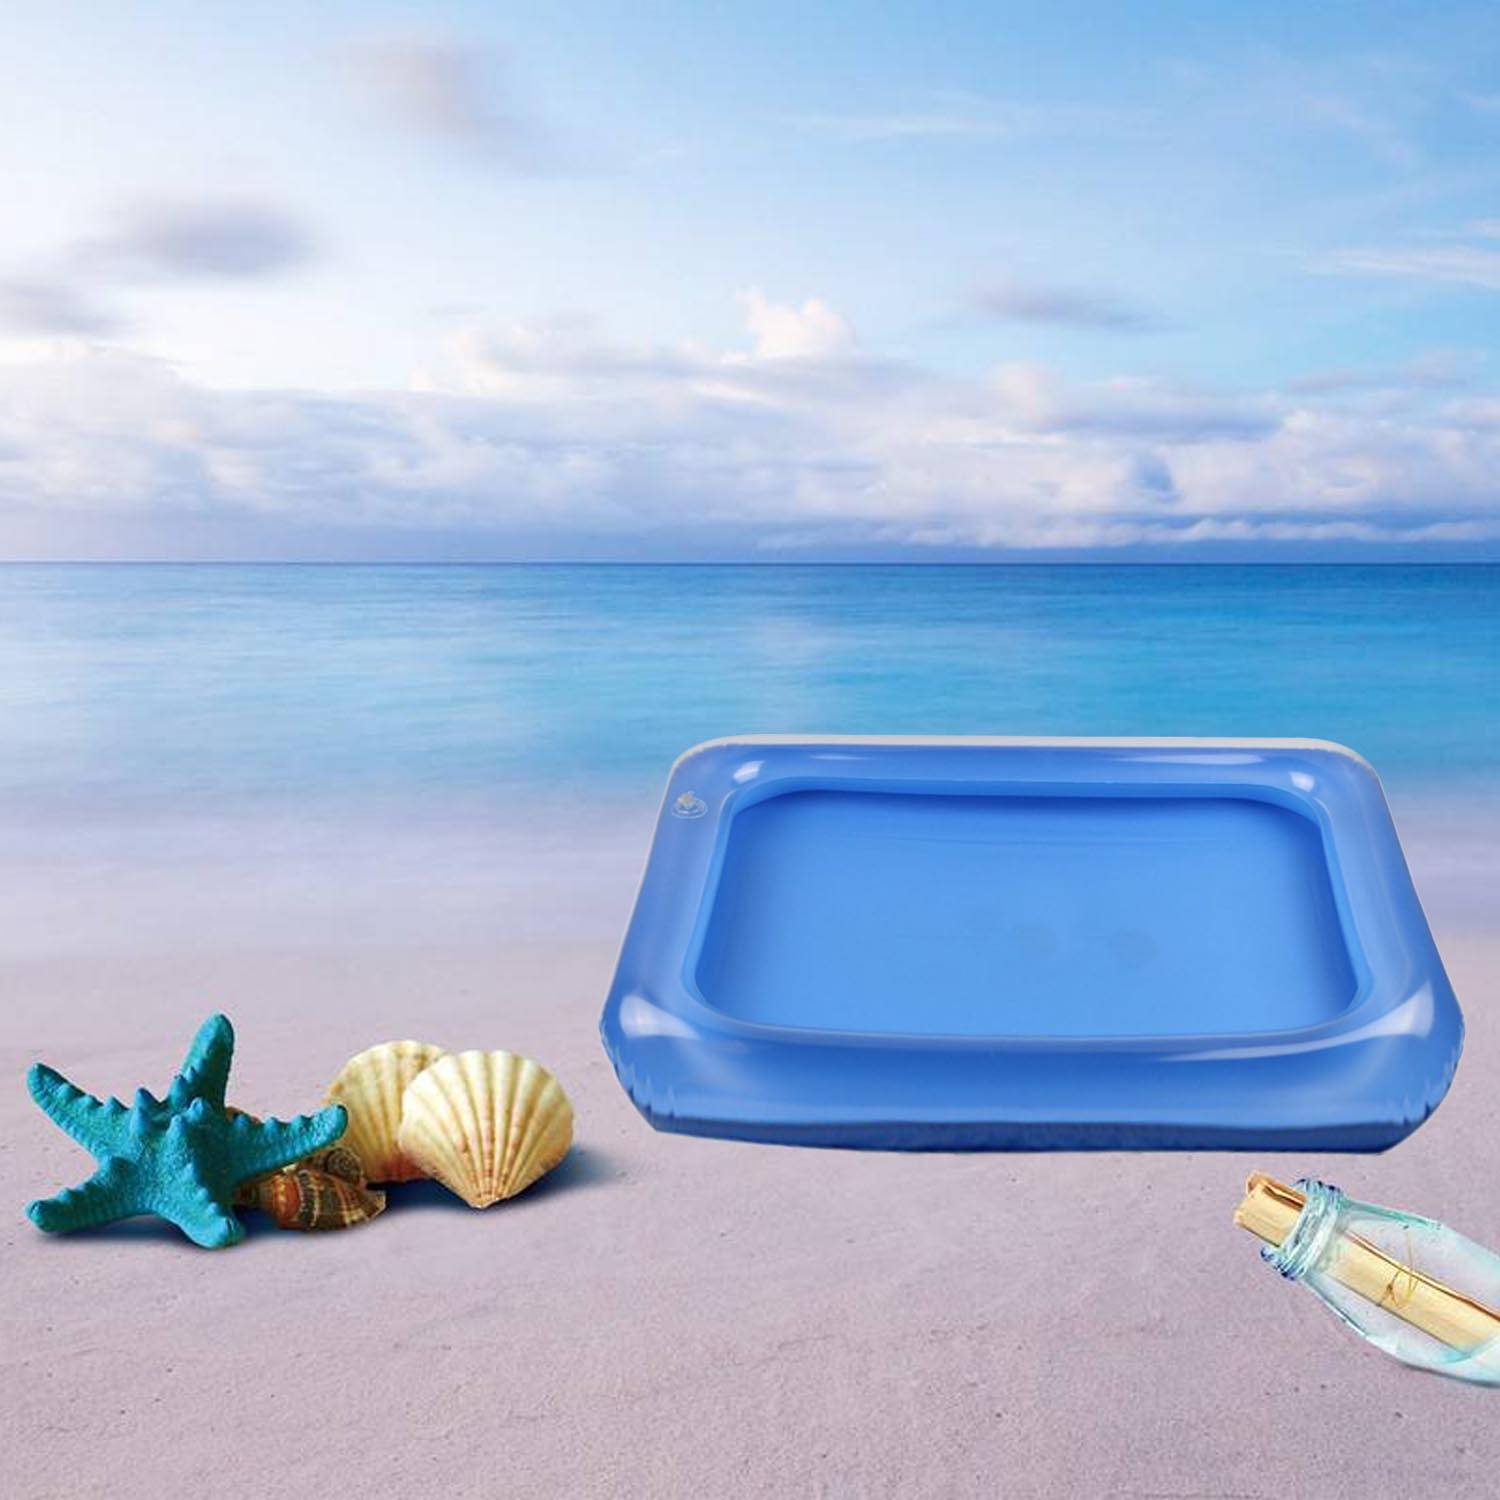 Kids Portable Inflatable Sand Tray Moldable Sandbox Indoor Play Sand Clay Color Mud Game Accessories Toy Random Color